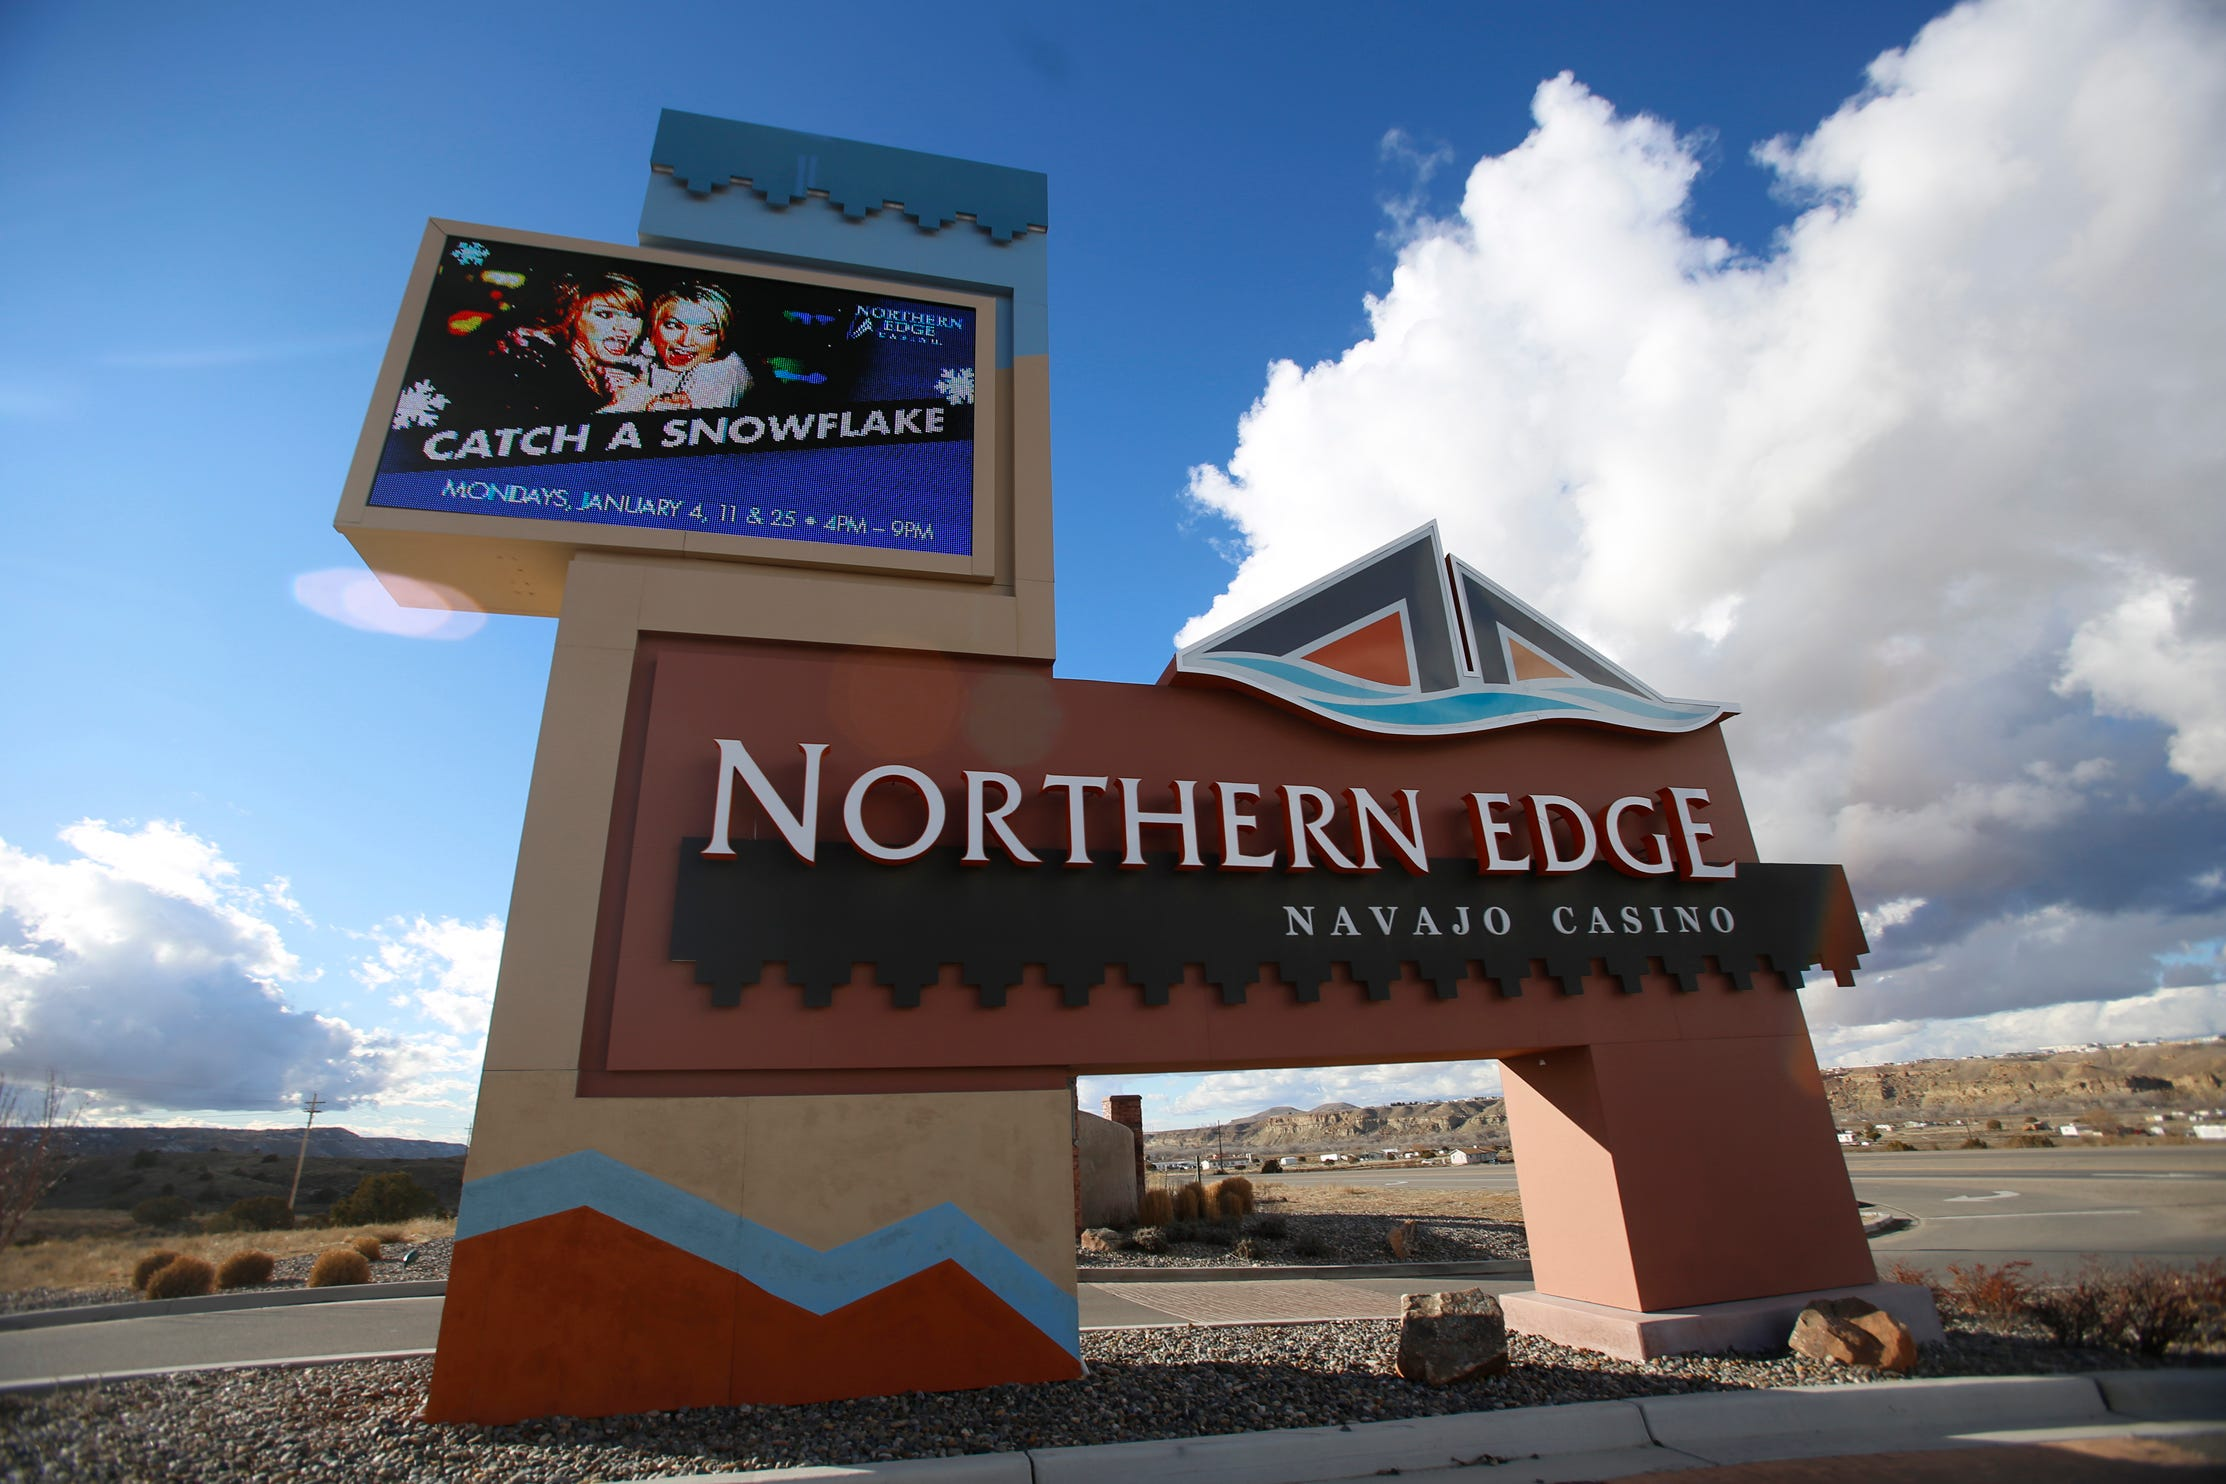 Navajo nation and casino casino marketing agency